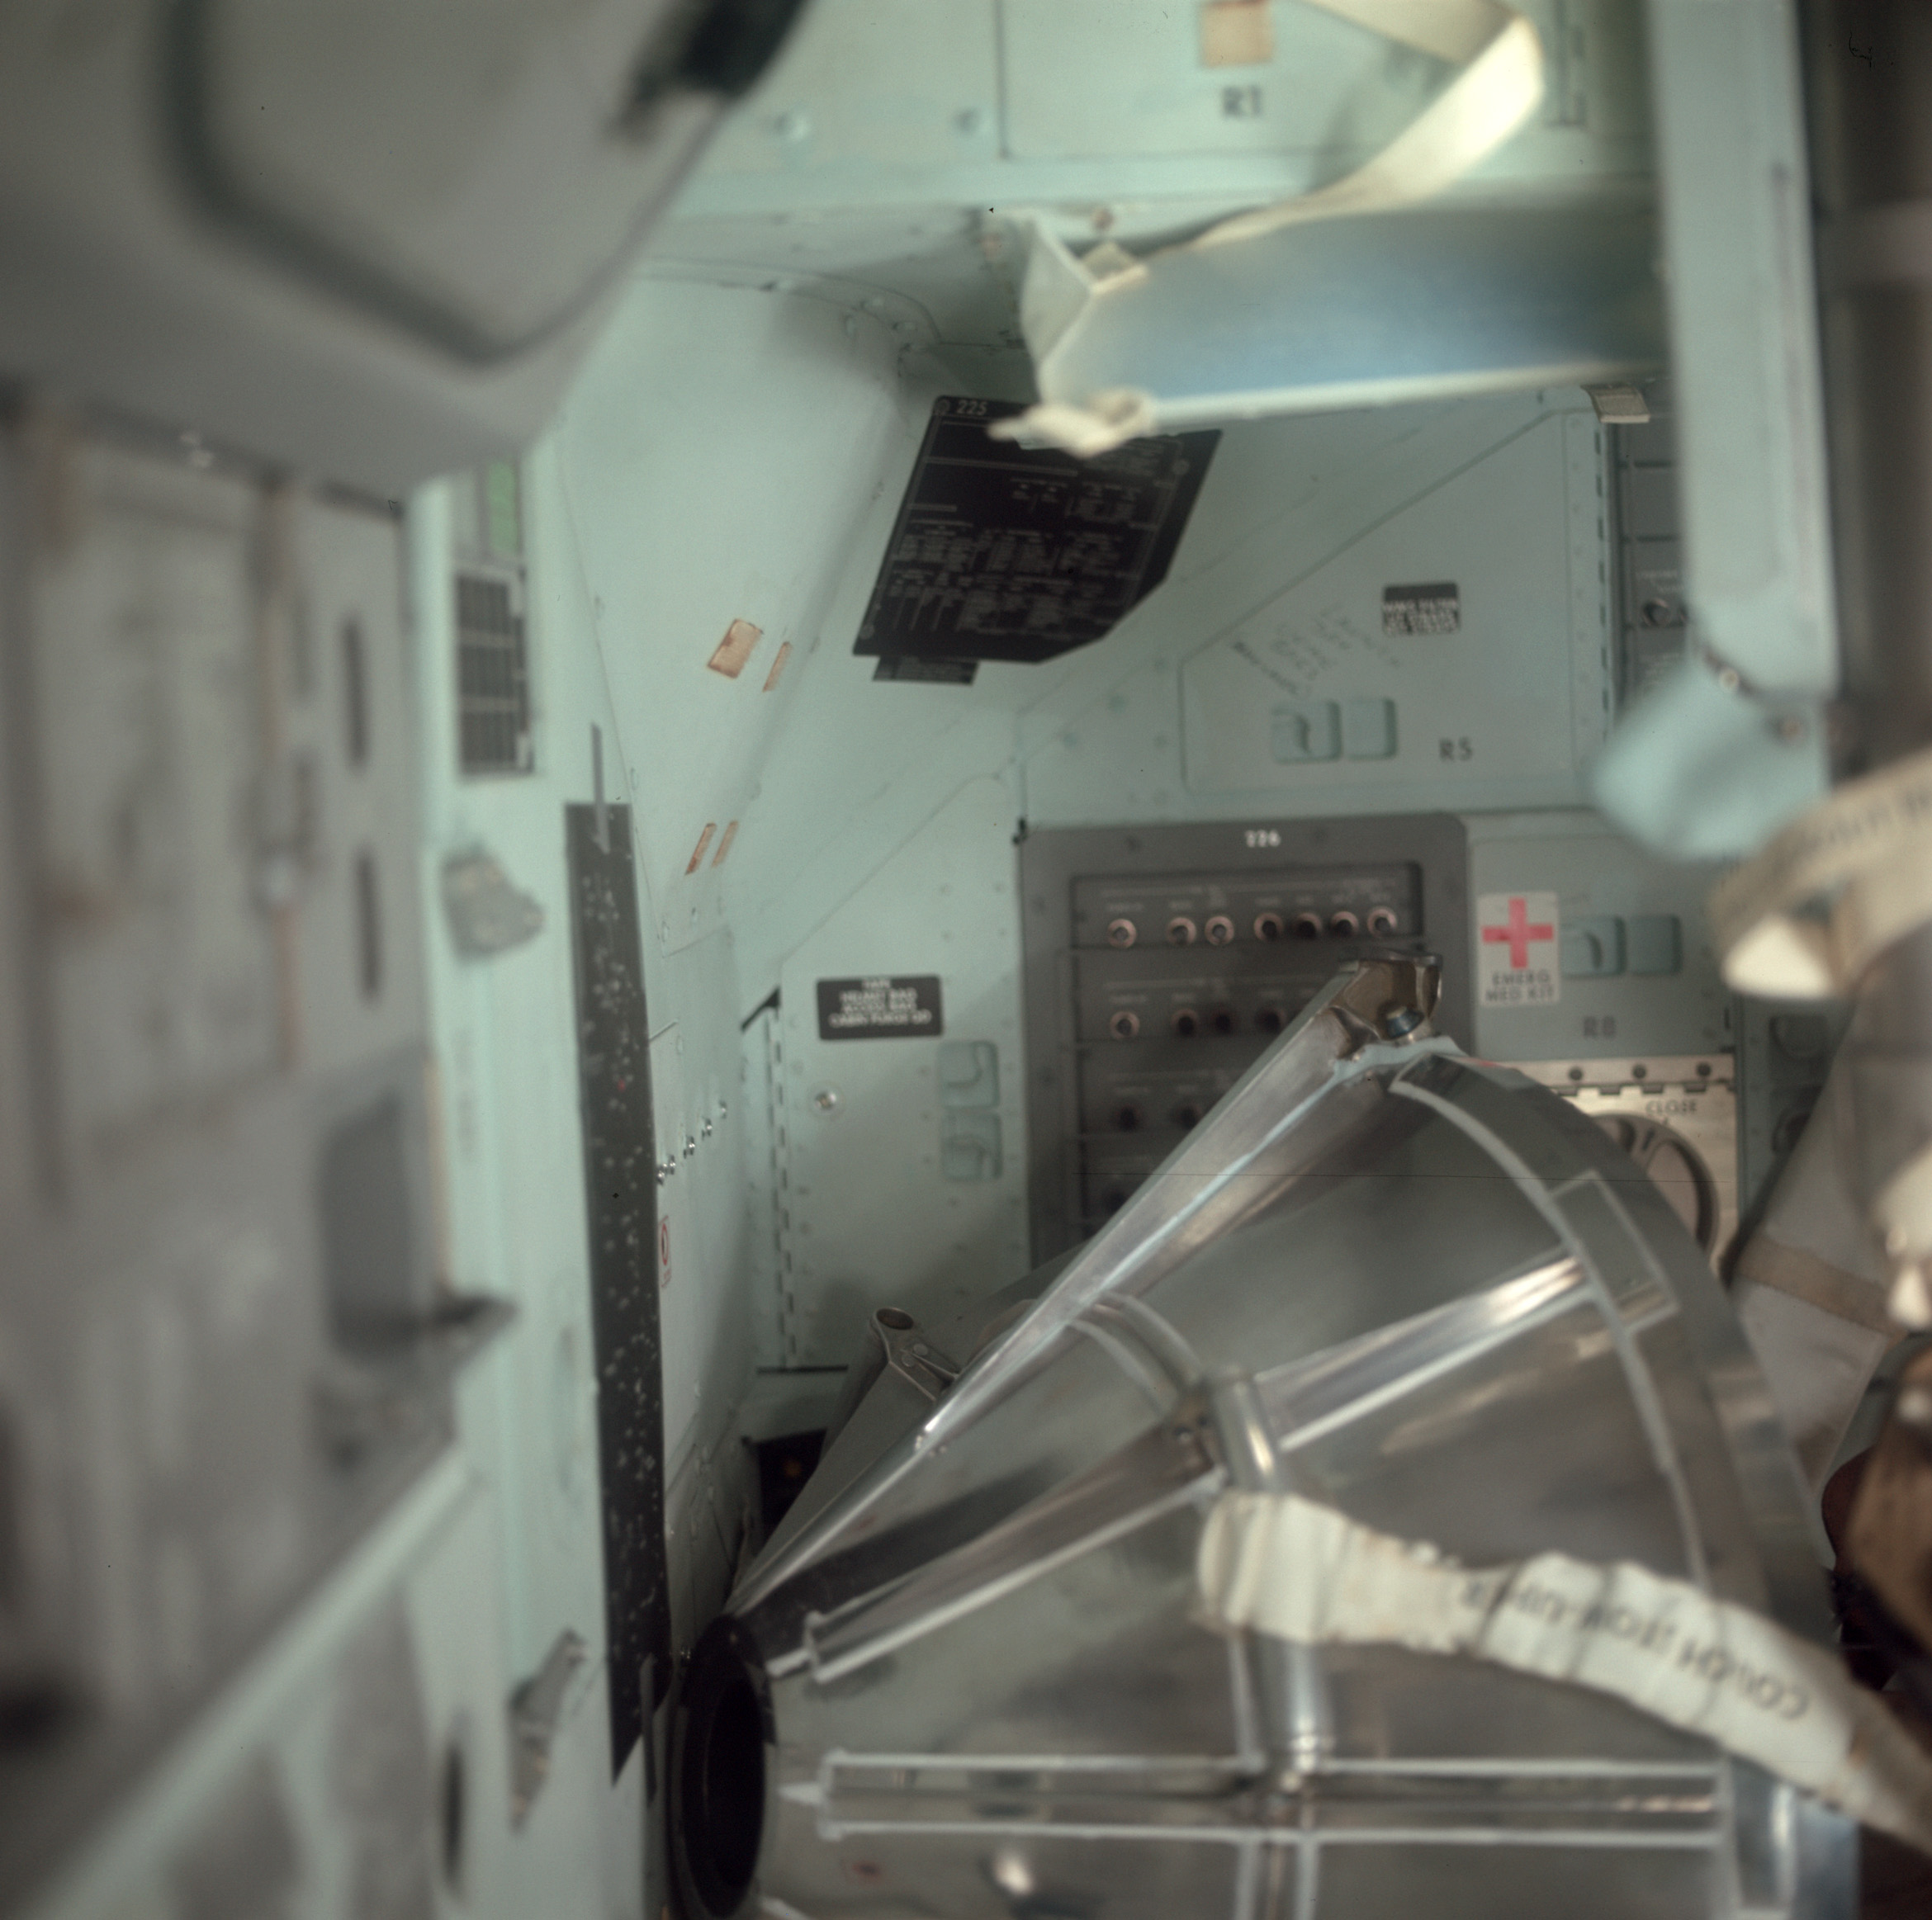 Apollo 11: Writing on command module walls - collectSPACE ...